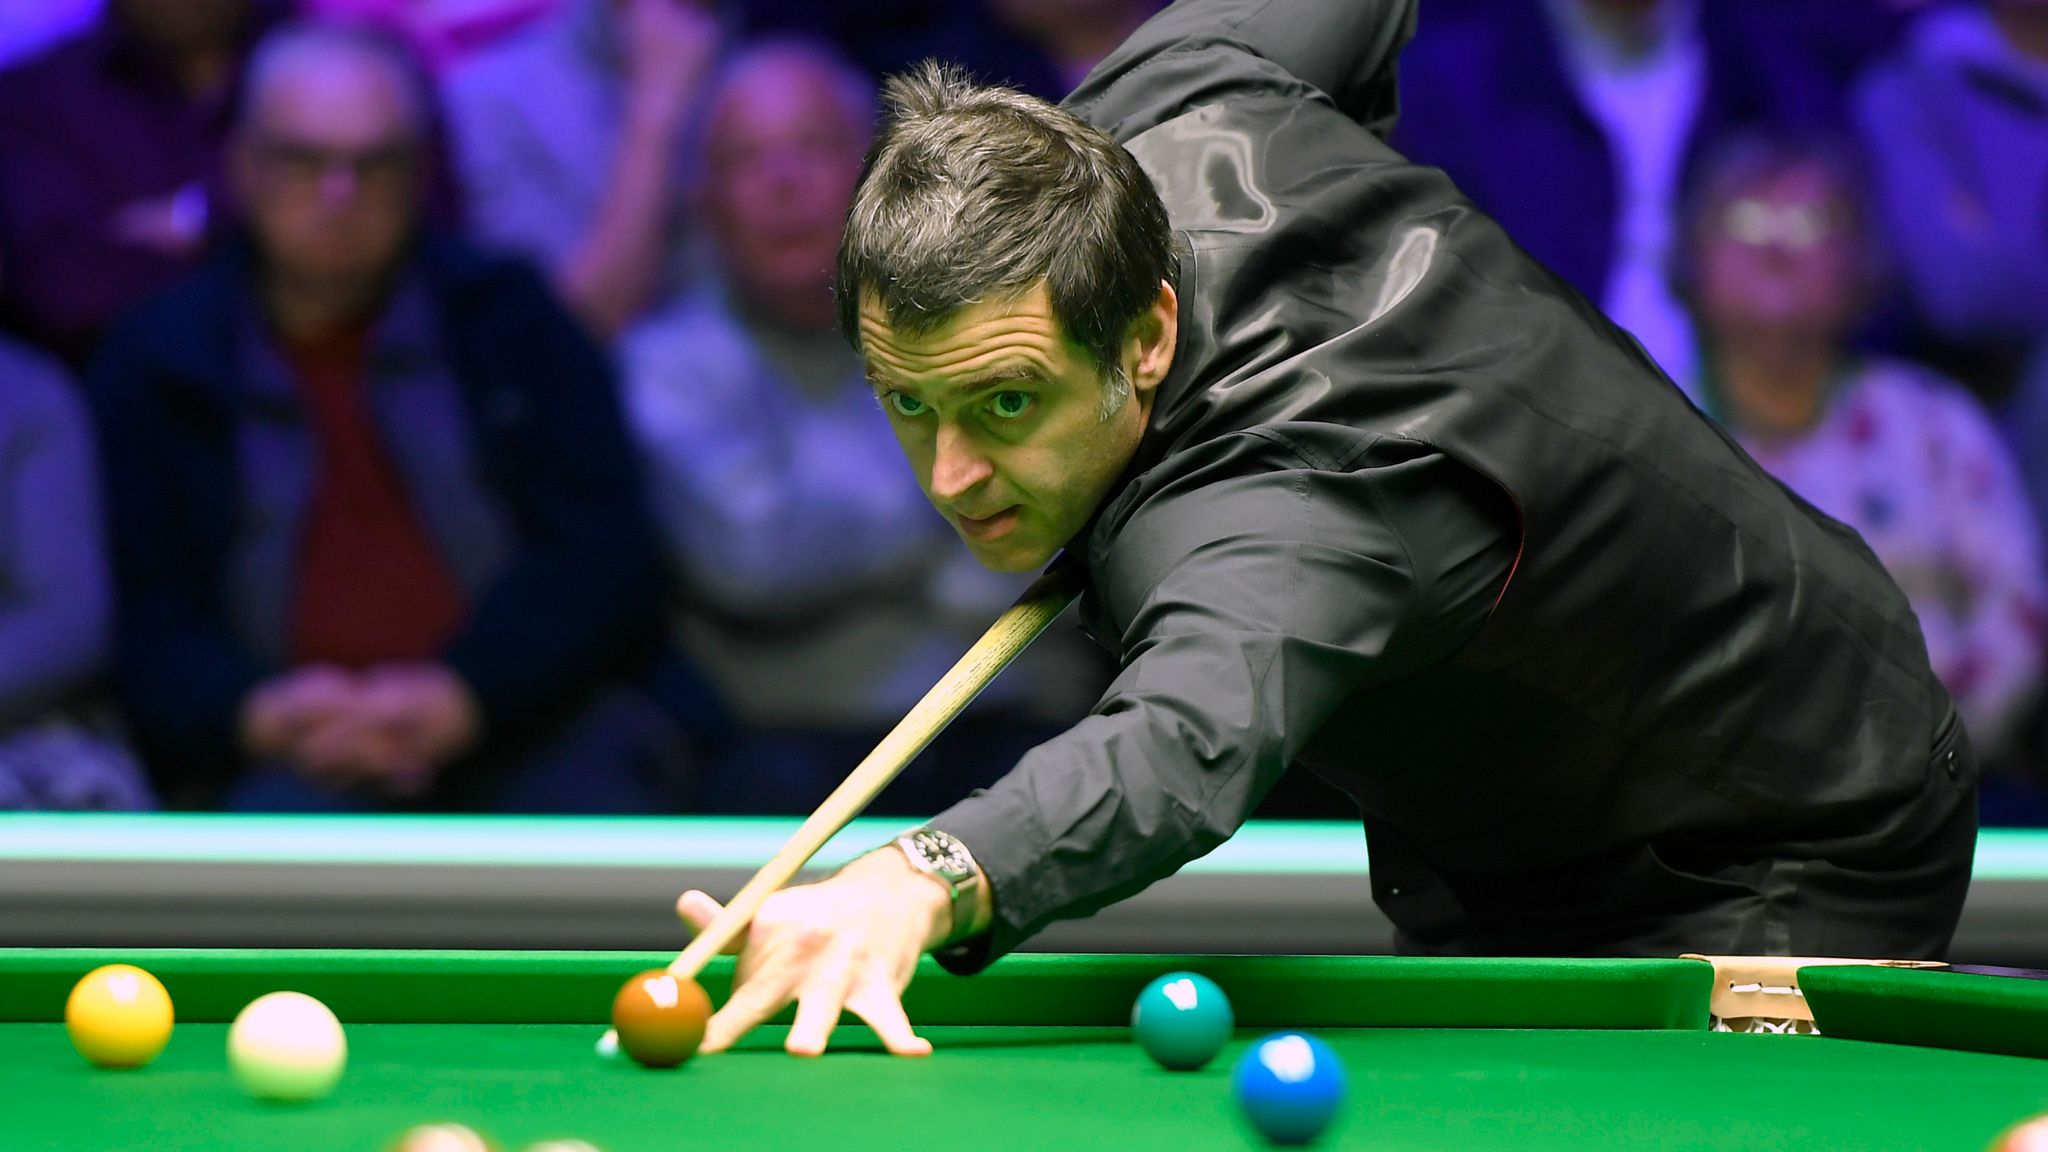 Snooker masters 2020